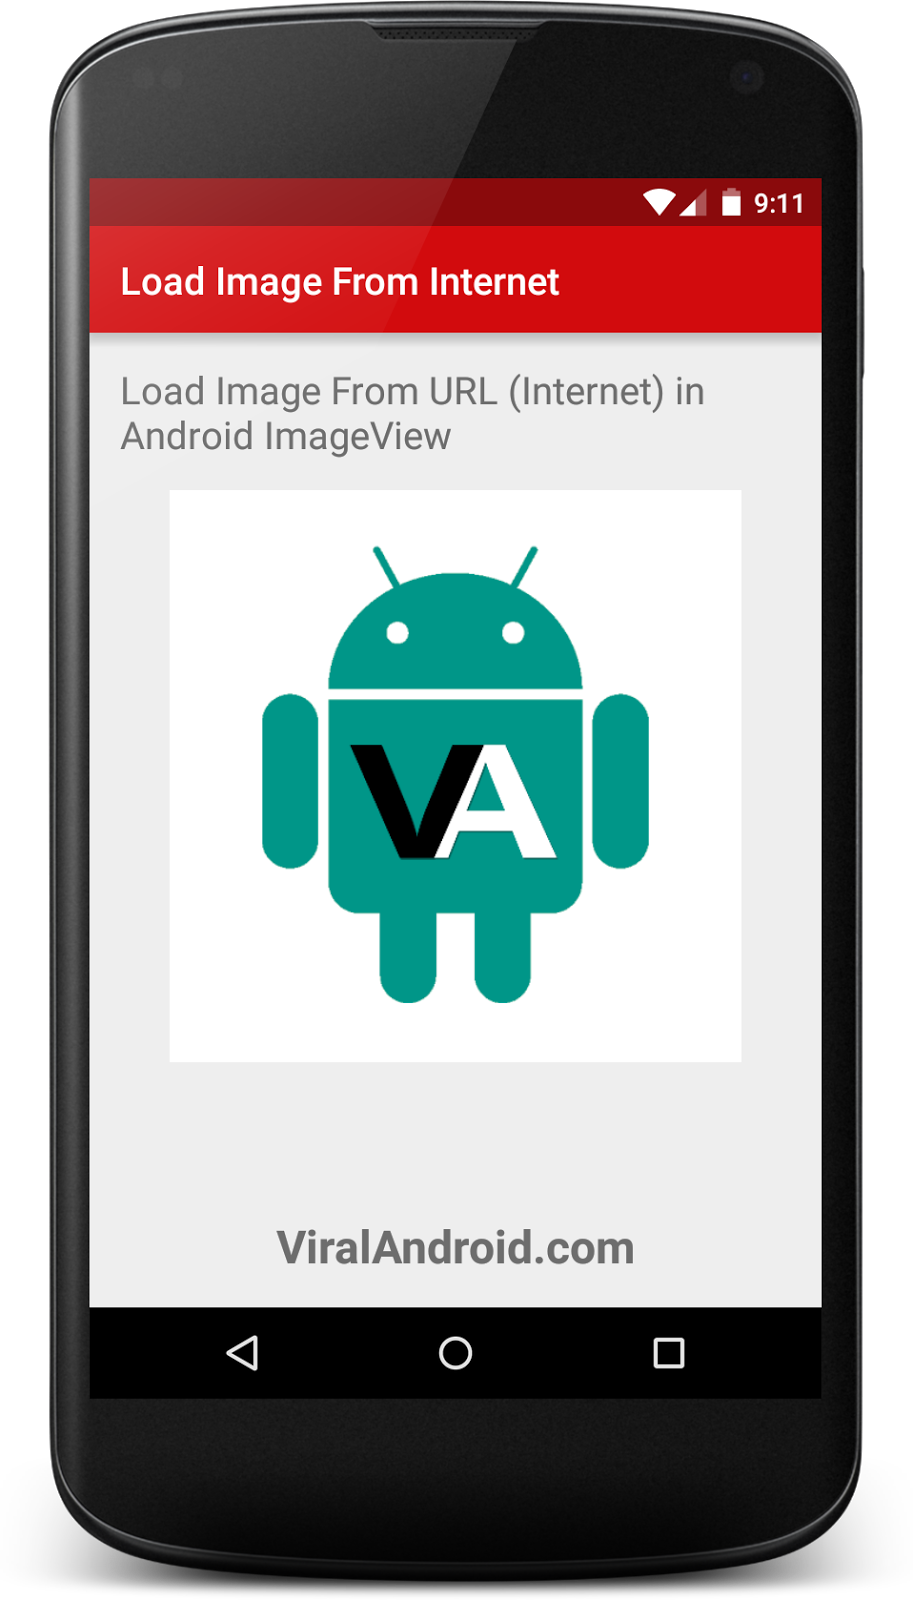 Load Image from URL (Internet) in Android